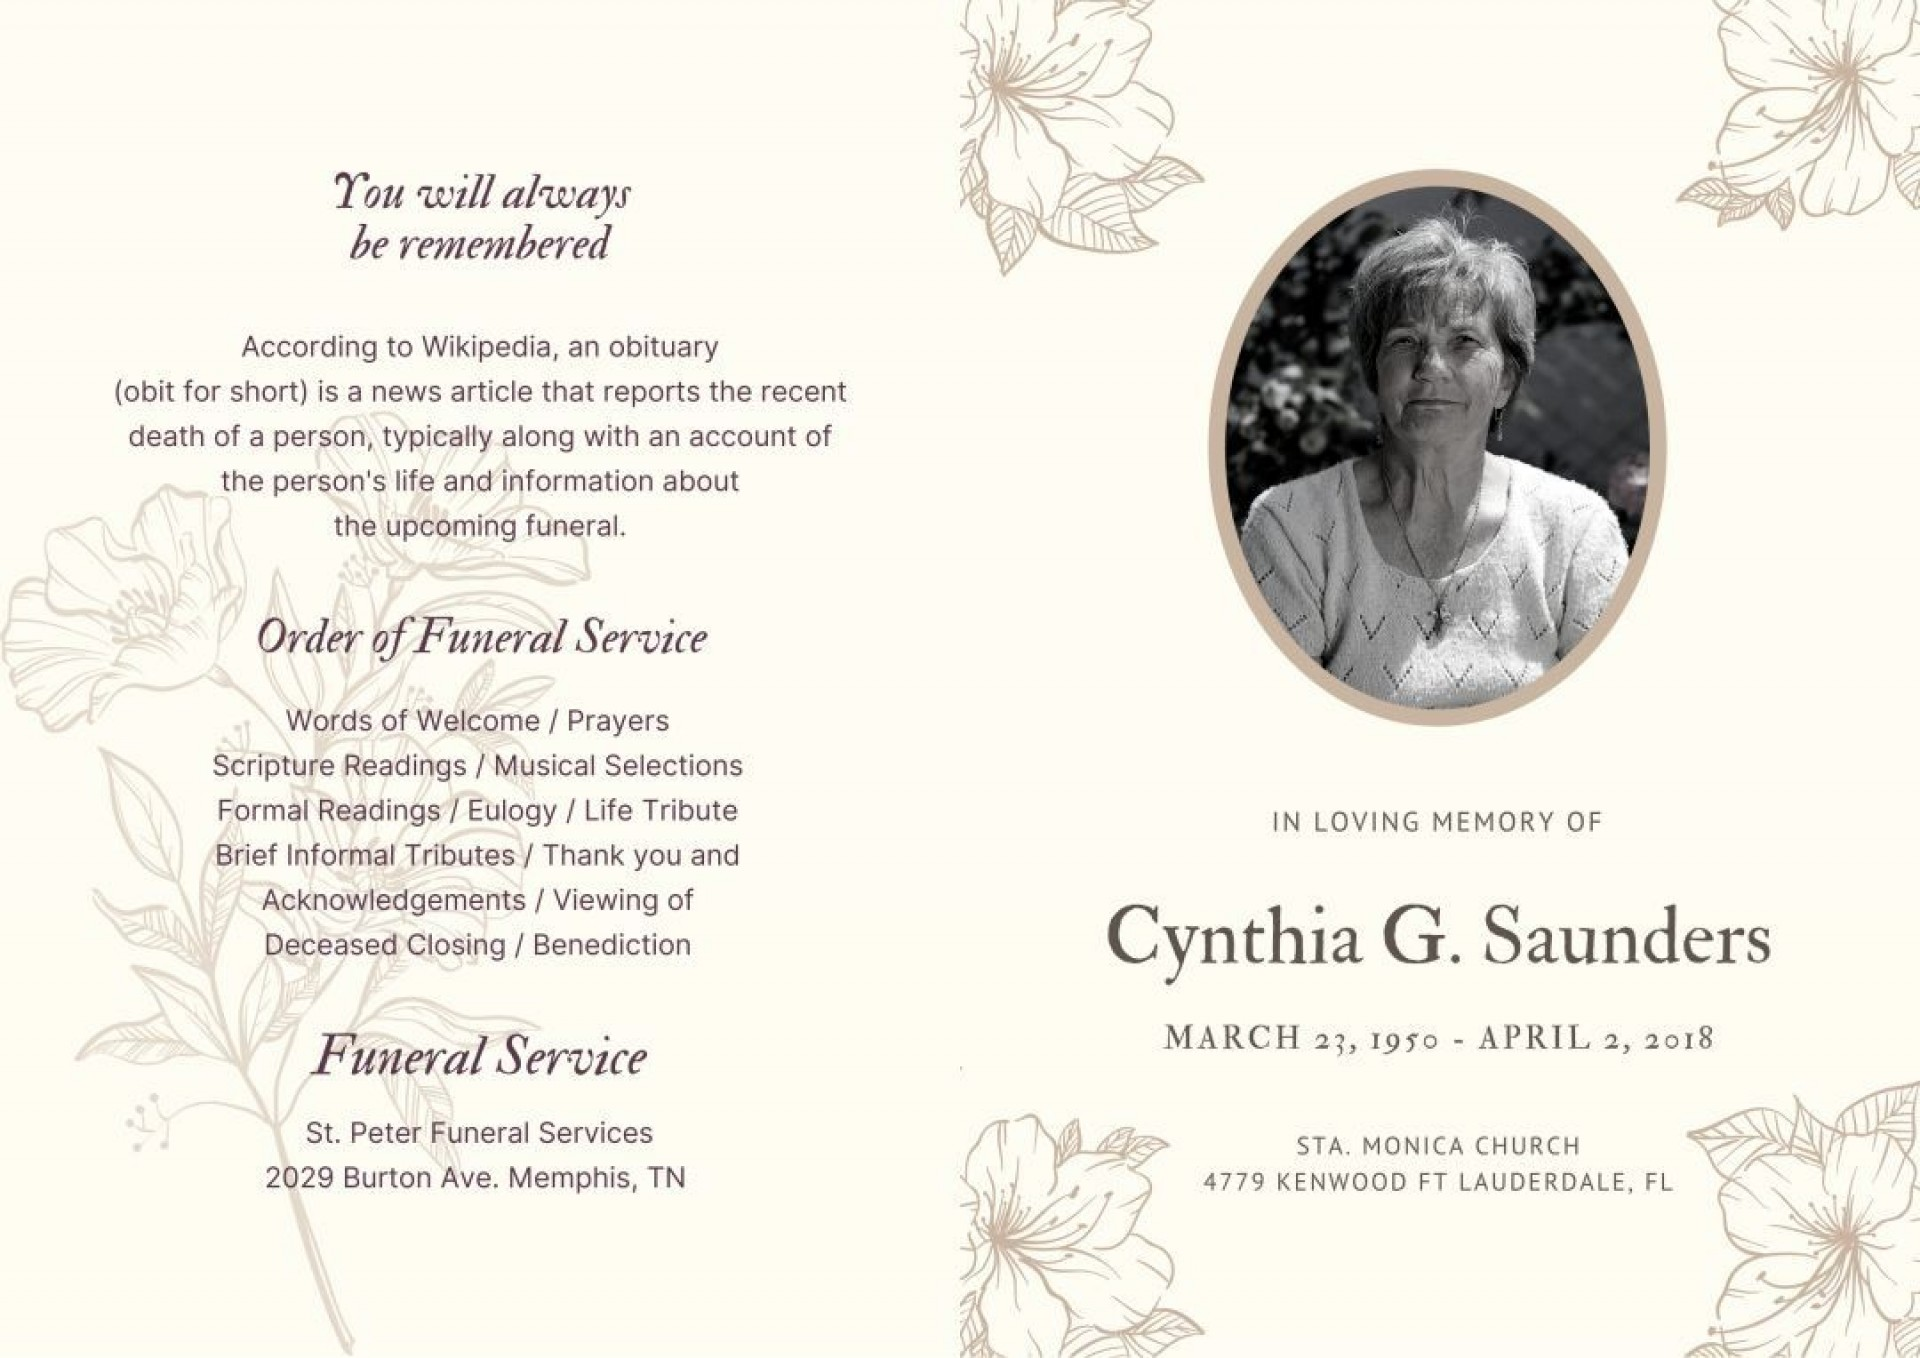 007 Frightening Celebration Of Life Template Free Download Highest Clarity  Invitation1920